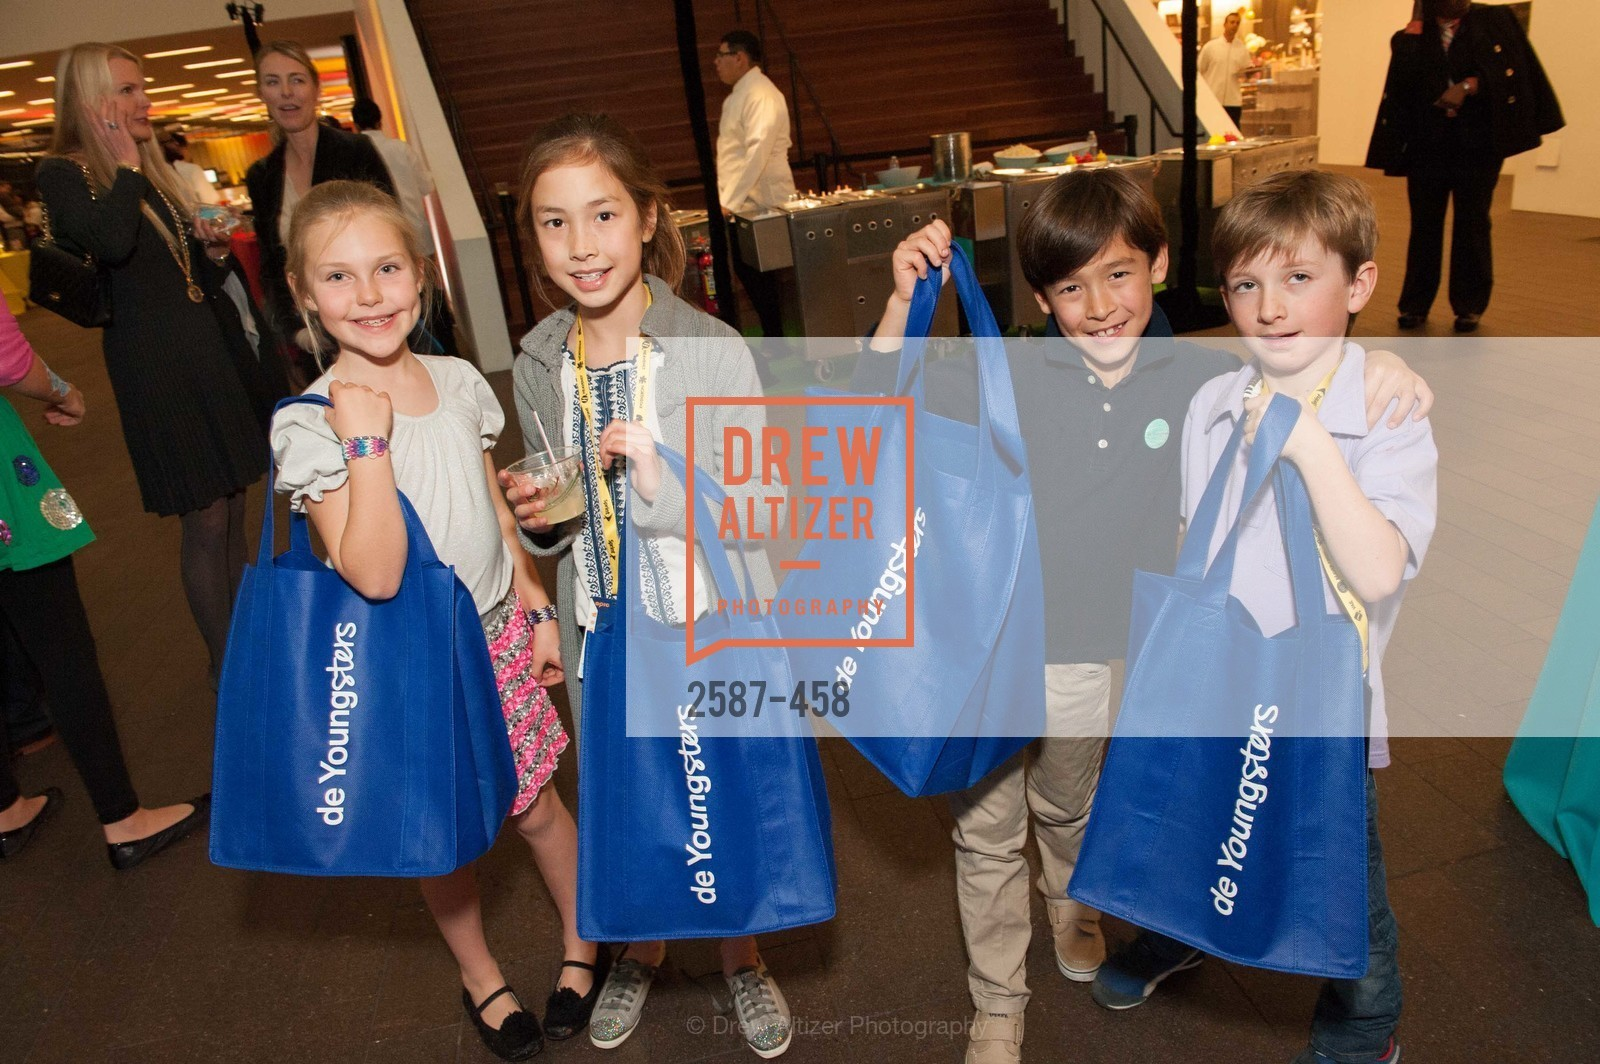 Tabatha Froeb, Allie Chung, Elliot Chung, Gar Lasater, DE YOUNGSTERS A Bigger Family Party, US. US, January 10th, 2014,Drew Altizer, Drew Altizer Photography, full-service event agency, private events, San Francisco photographer, photographer California